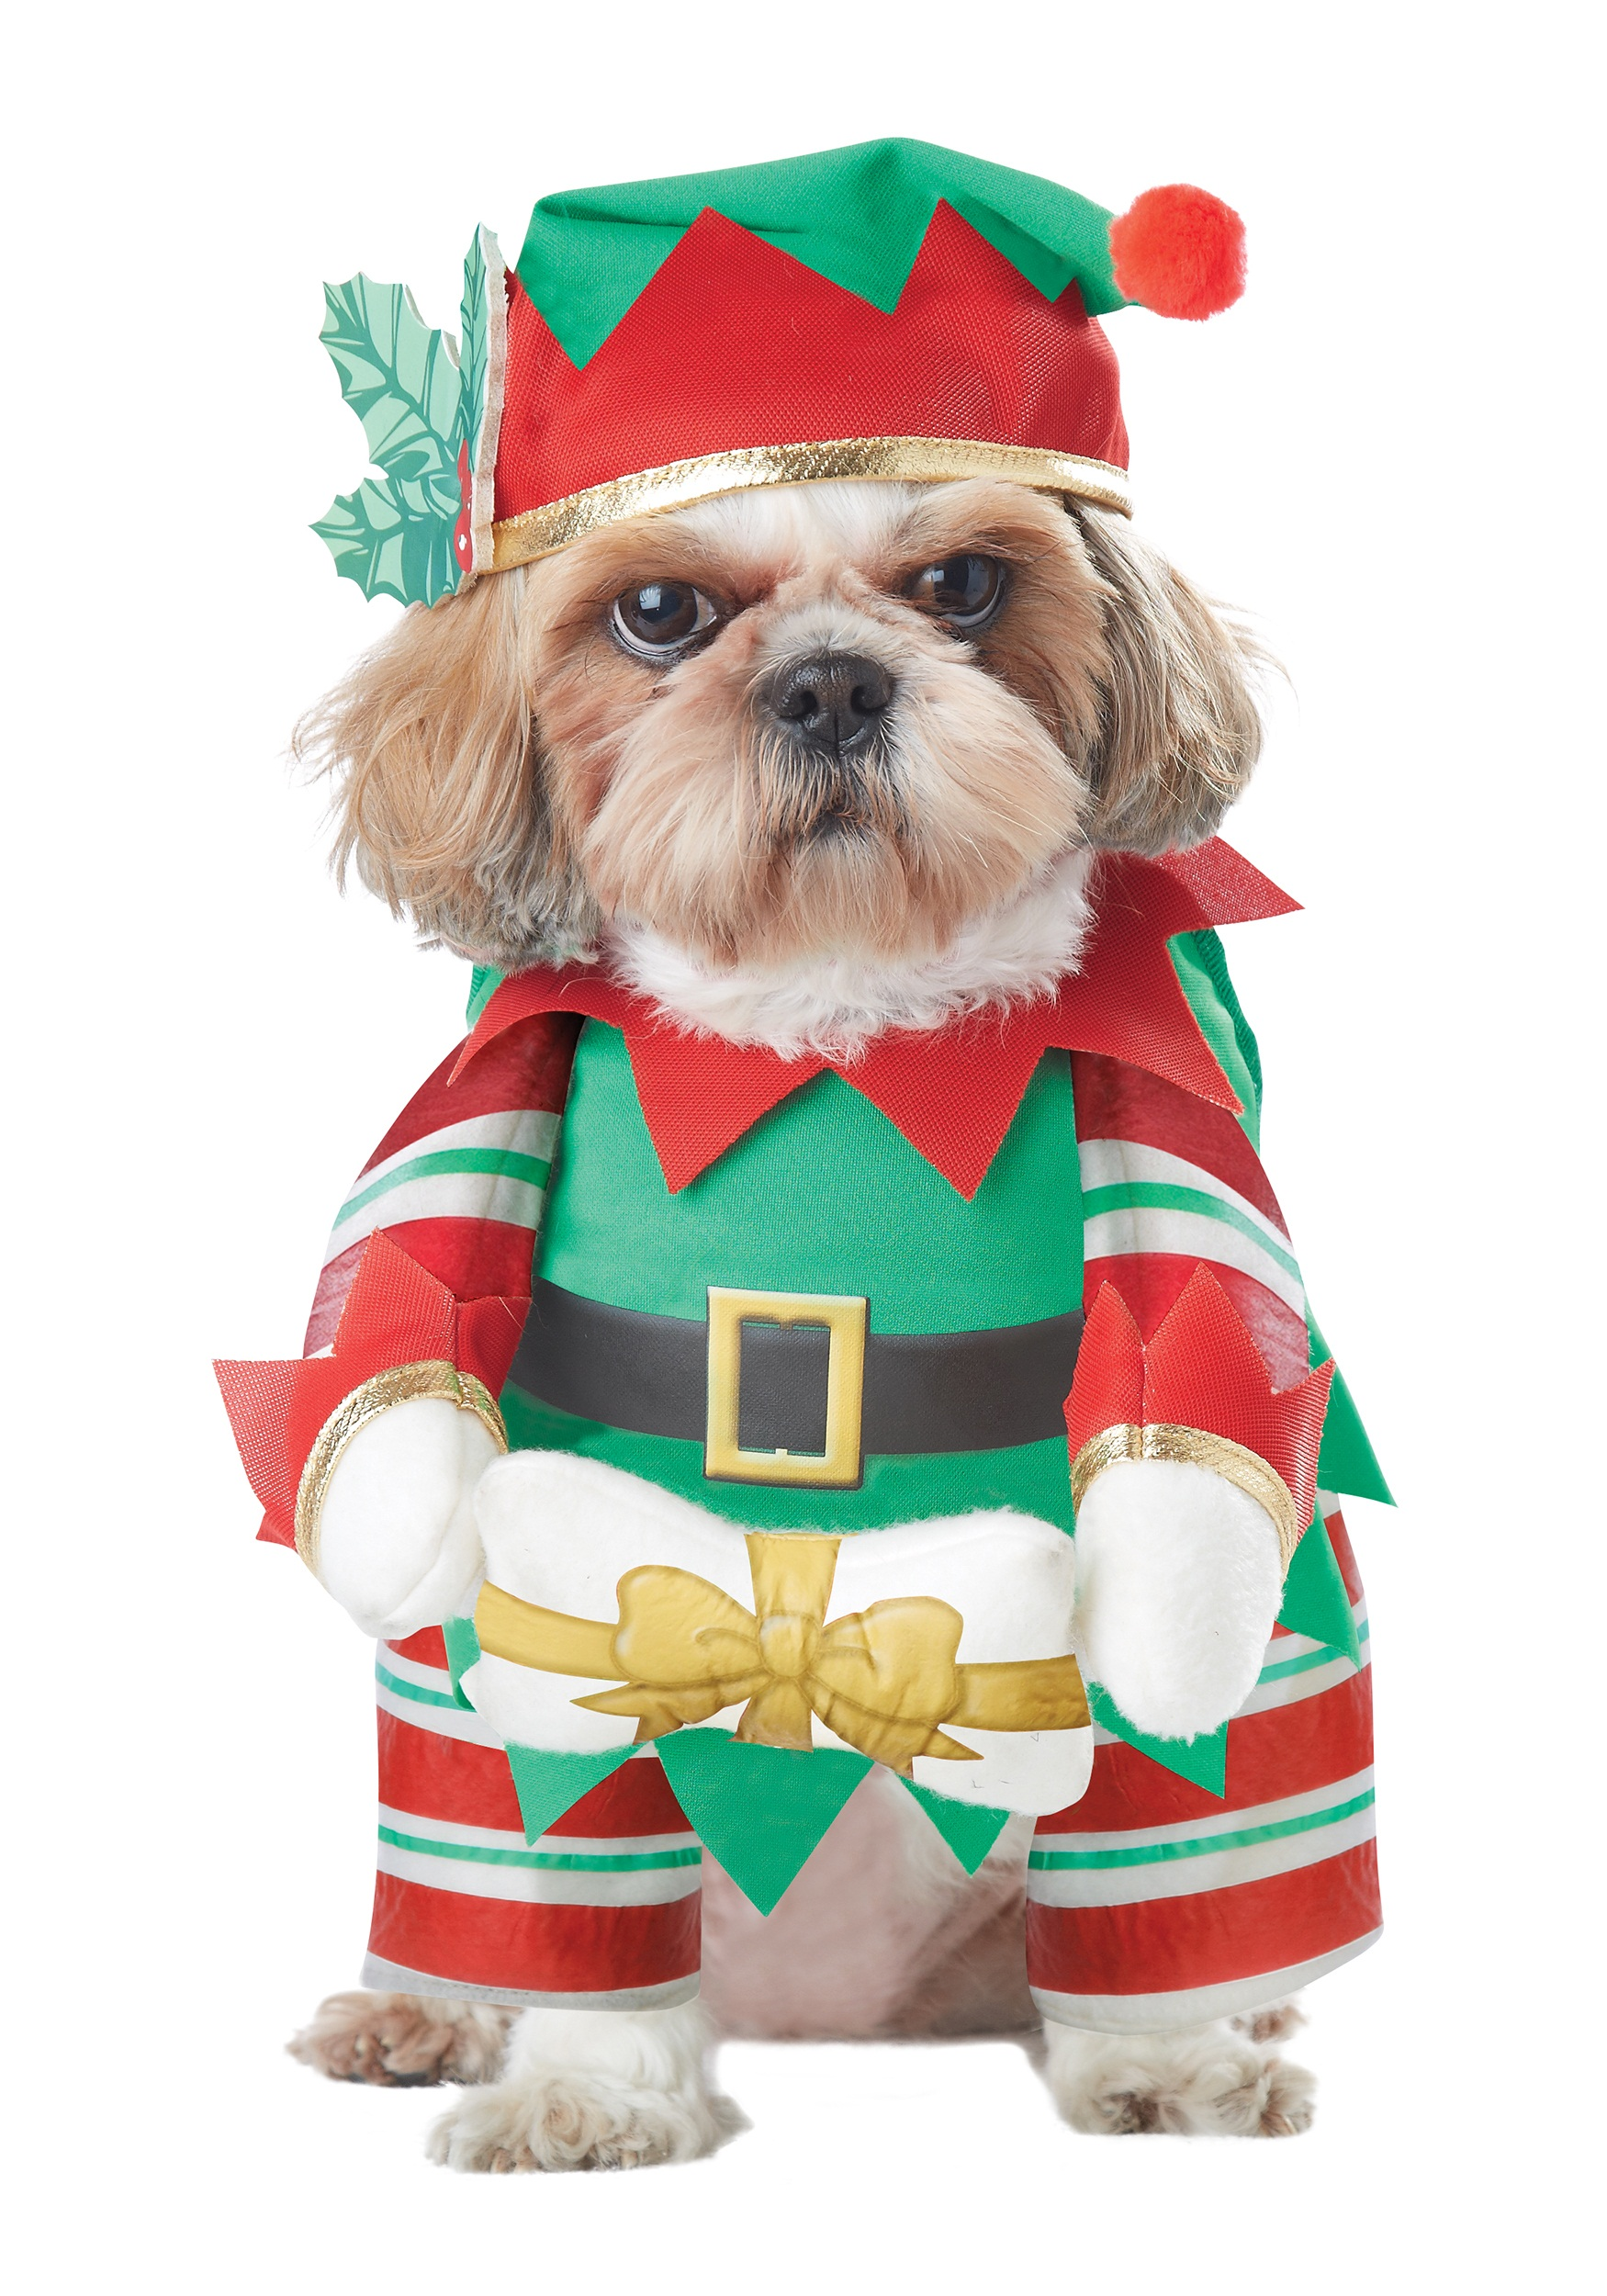 Elf Dog Costume photo - 1